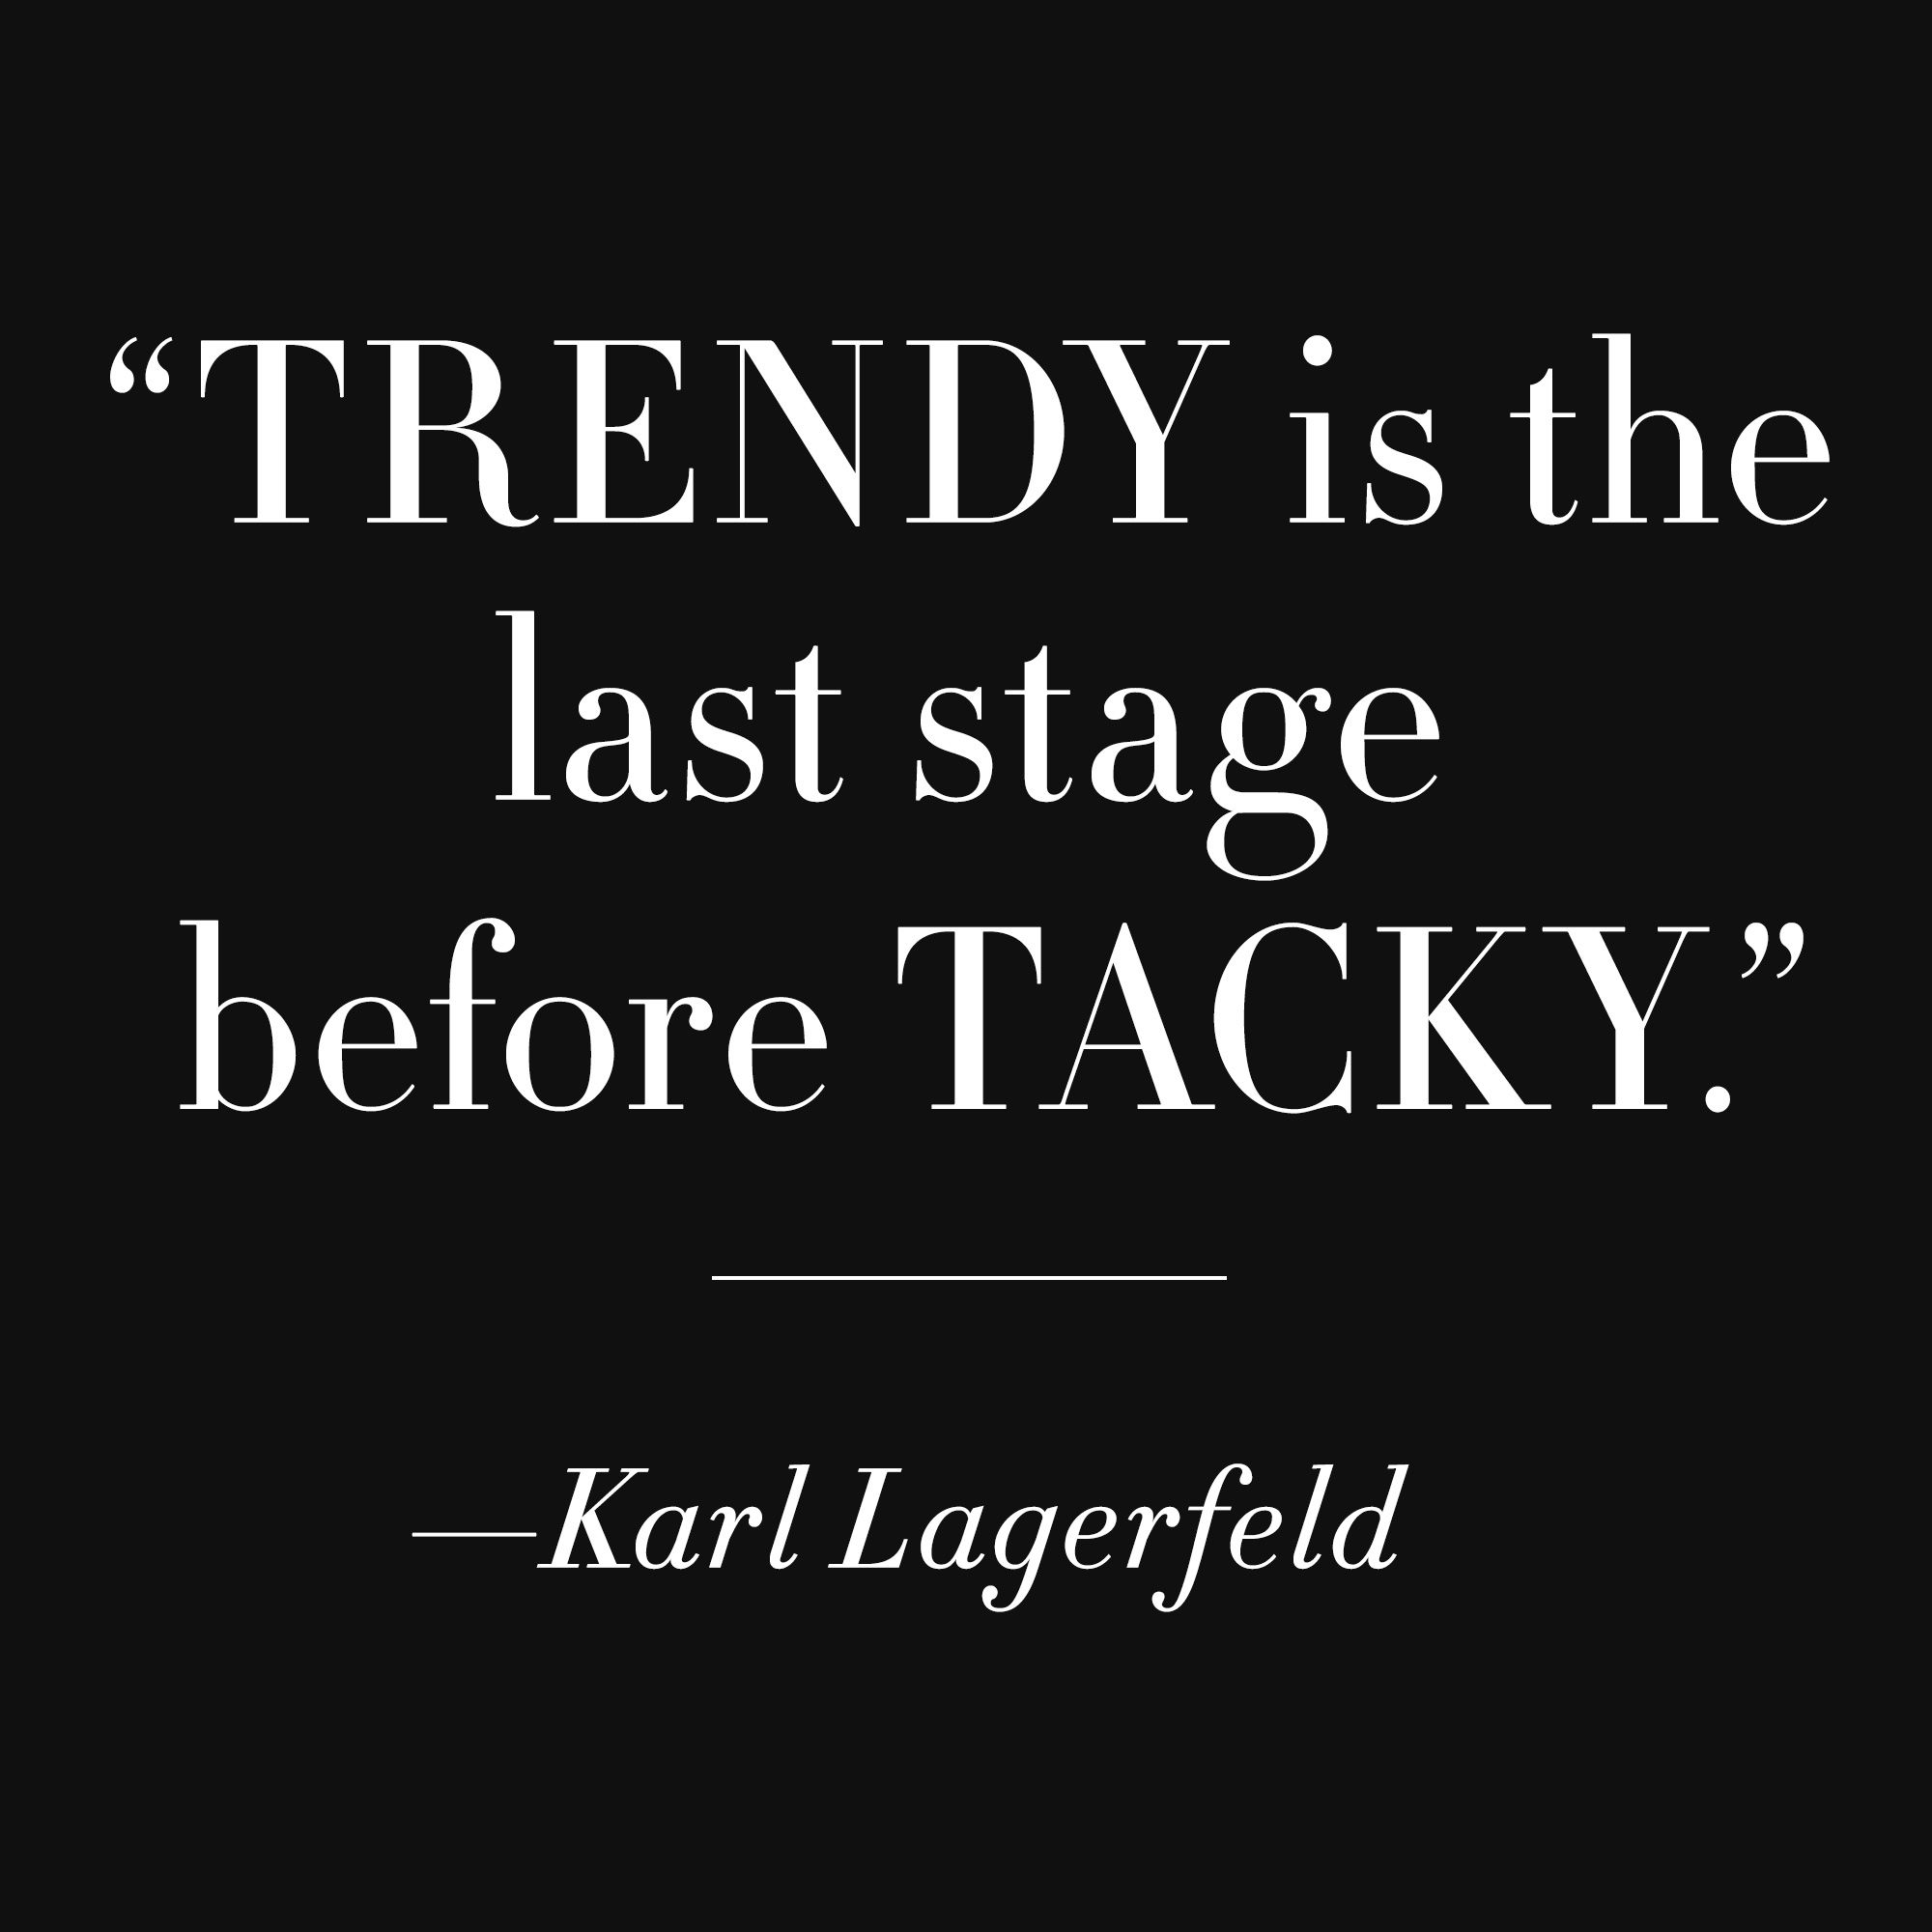 50 famous fashion quotes from karl lagerfeld coco chanel diana vreeland famous fashion quotes